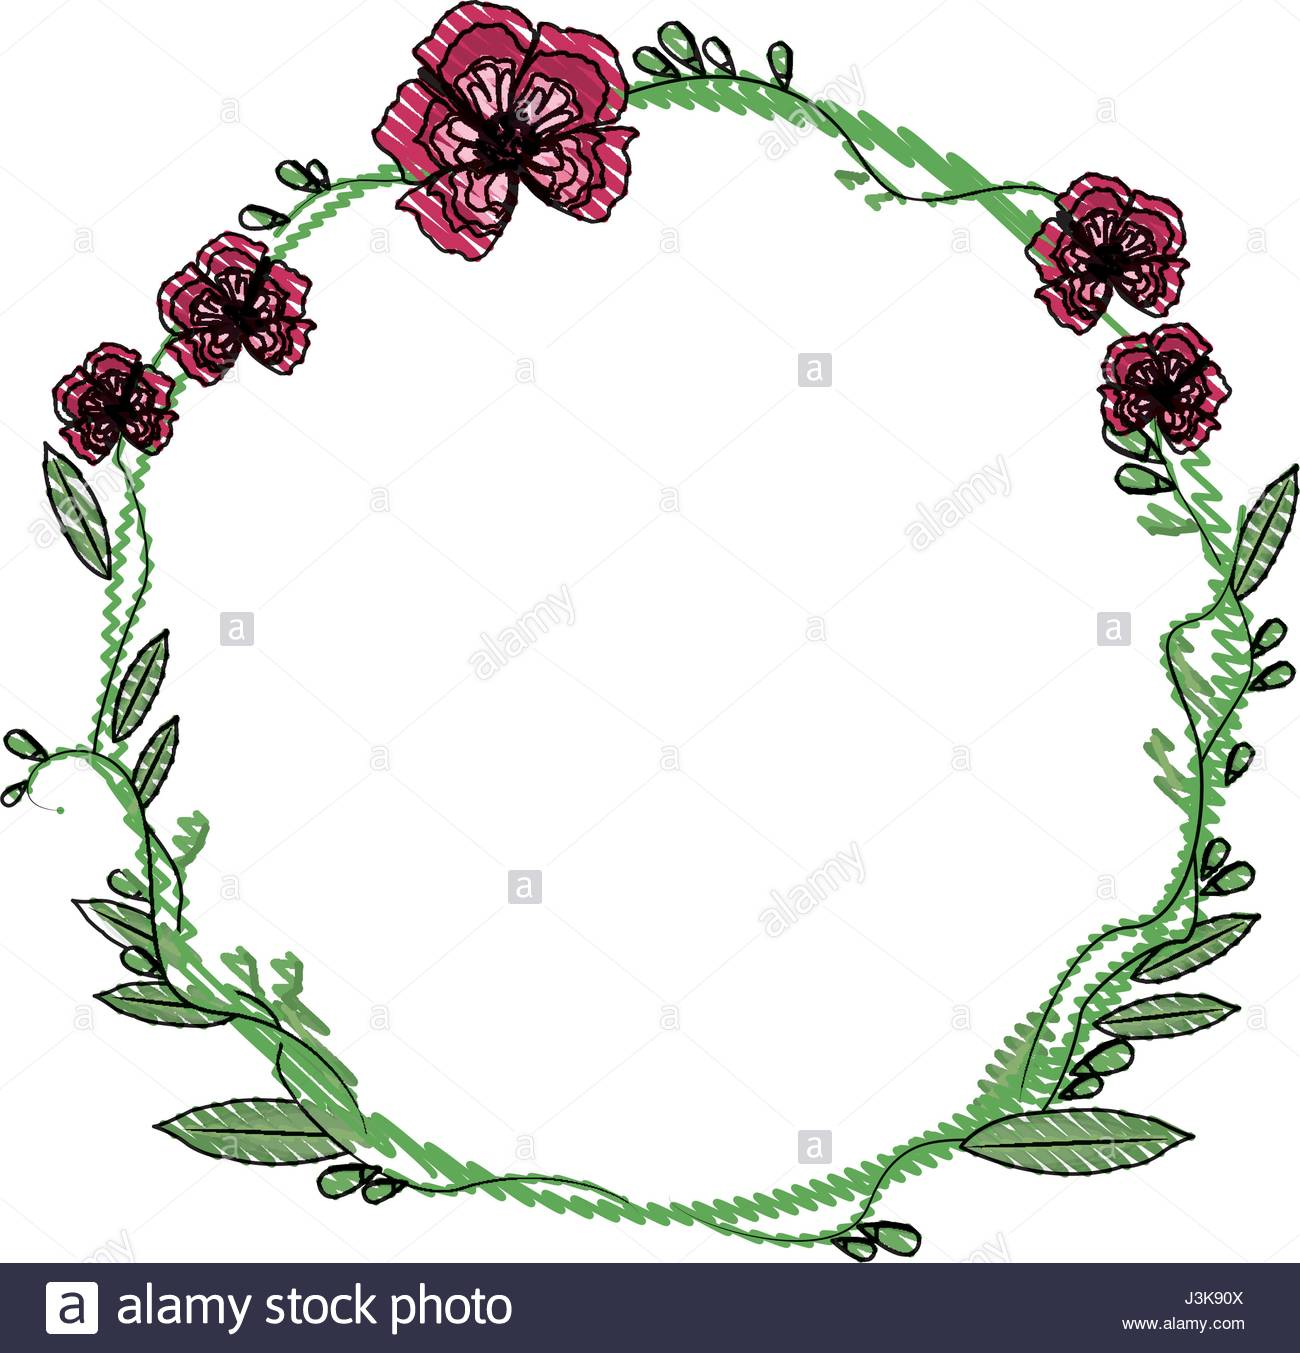 1300x1353 Drawing Floral Wreath Flowers Decoration Stock Vector Art